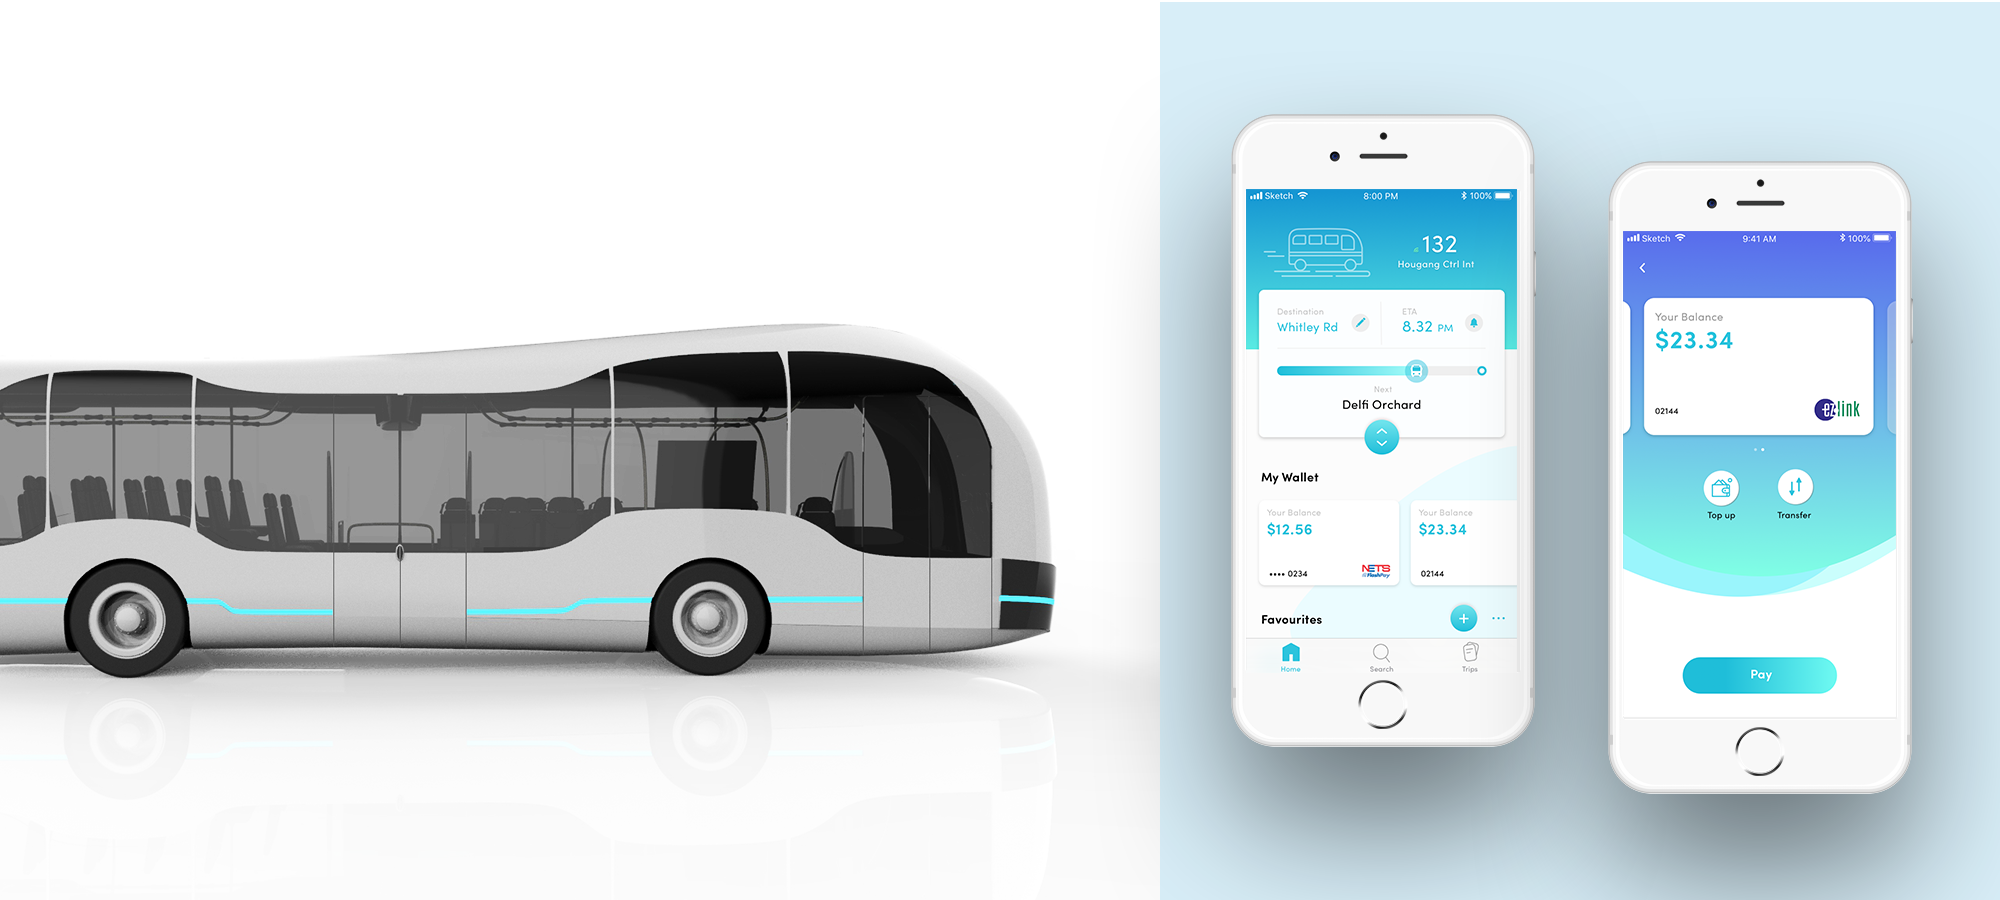 (Left) Omnibus (Right) bus.feed - Our proposed solutions